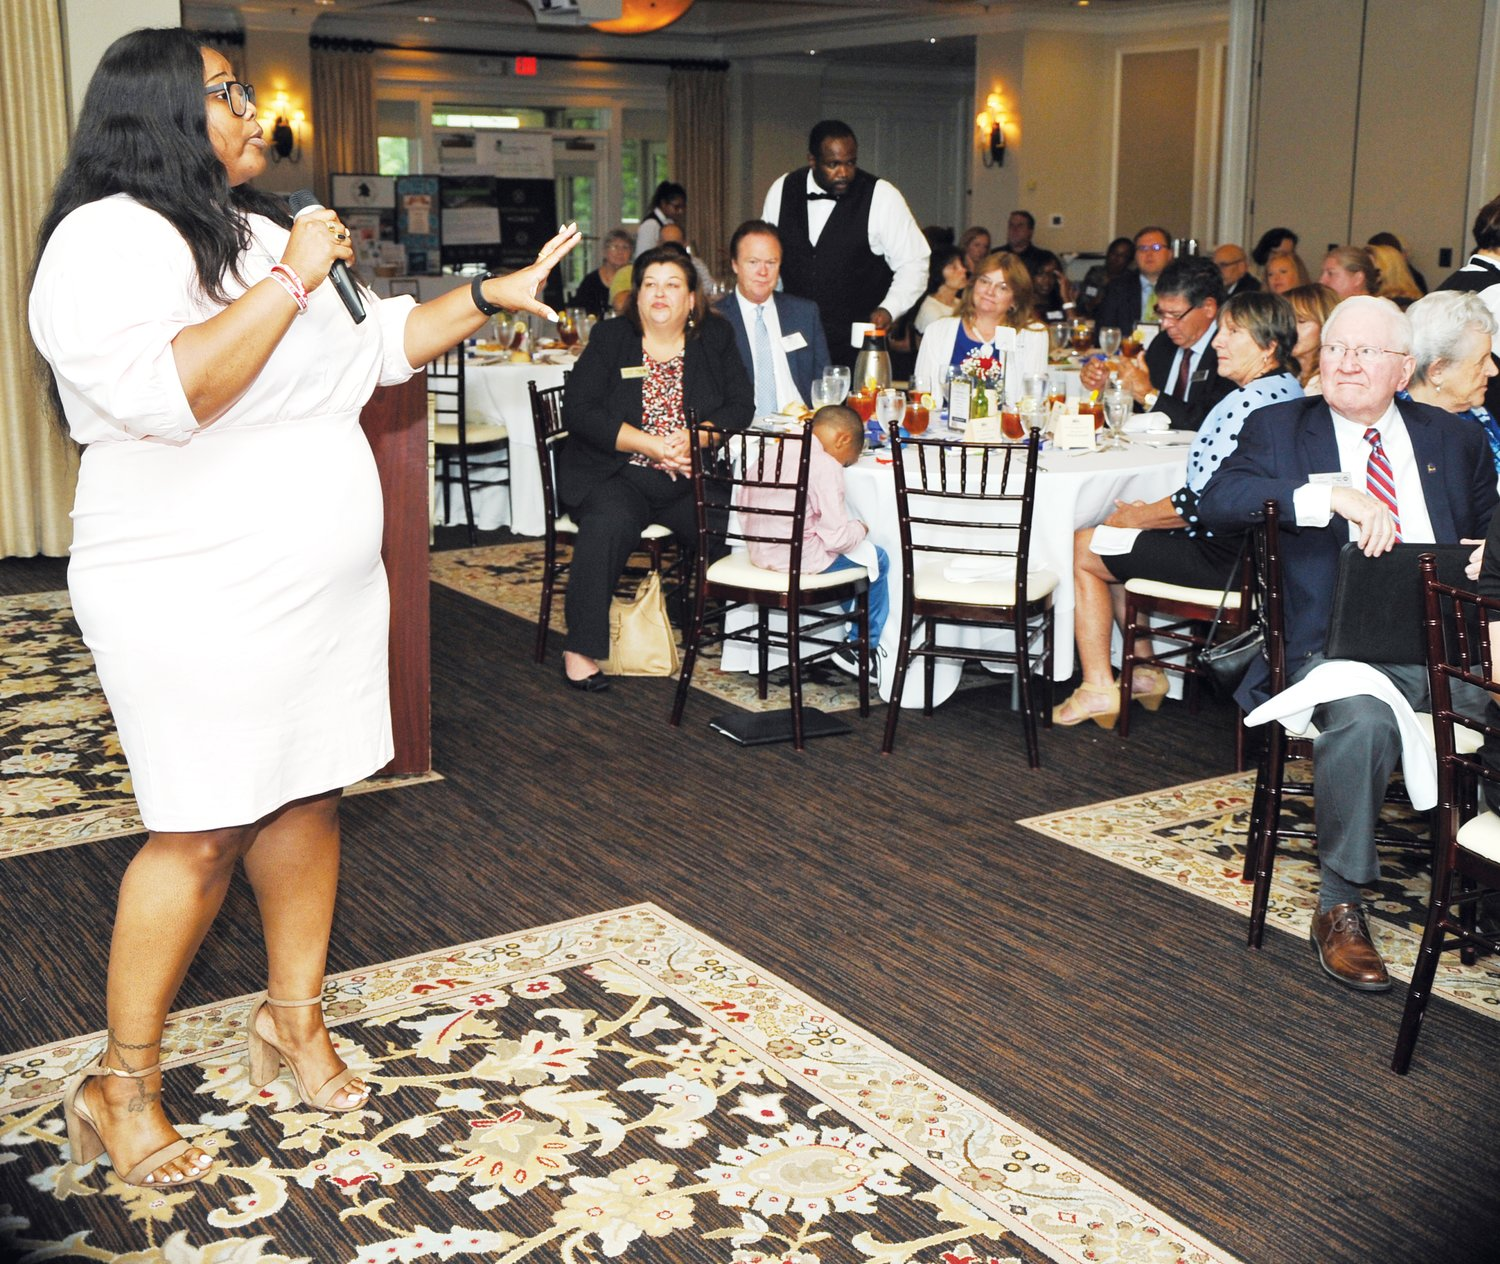 Georgina Dukes offered a window into the new NCCARE360 program for the audience at last Thursday's United Way of Chatham County campaign kickoff luncheon. Dukes gave a brief overview of the new health care concept and the benefits of connecting resources to the community in this system.